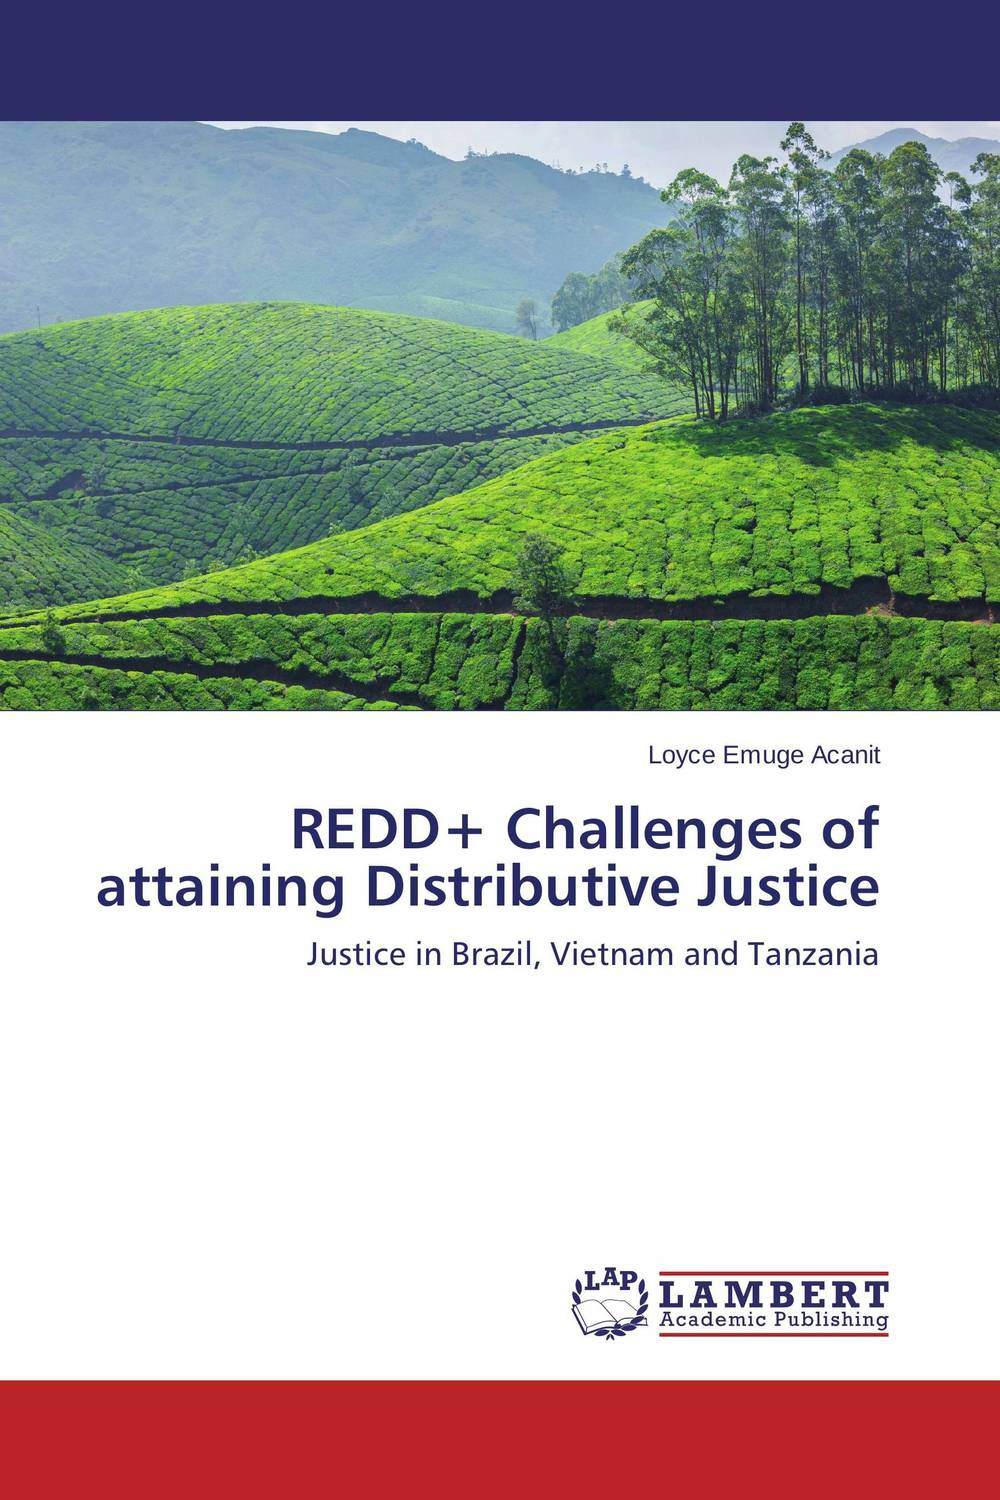 REDD+ Challenges of attaining Distributive Justice a short history of distributive justice